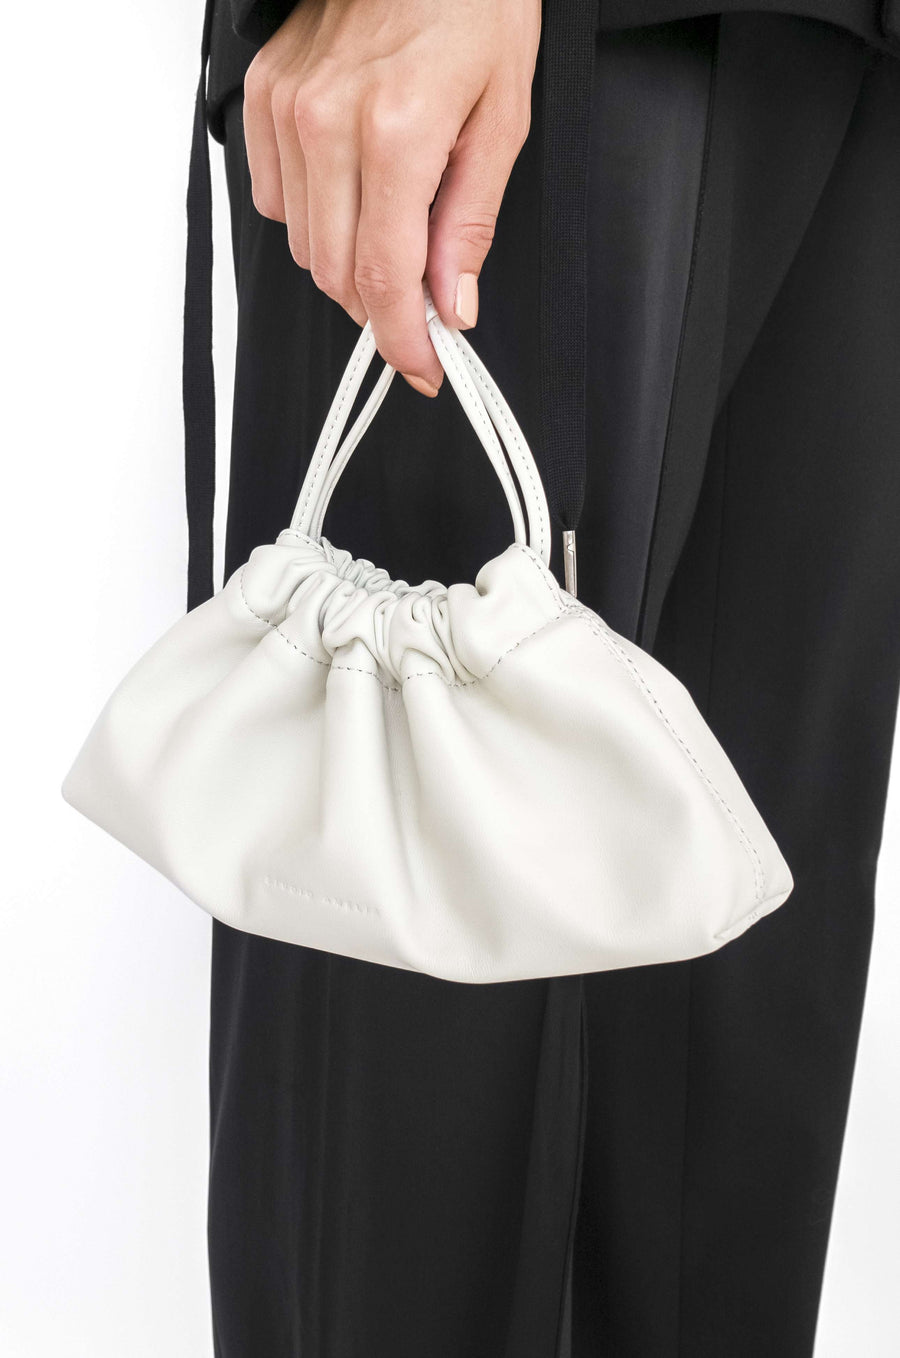 1.1 White Mini Bag